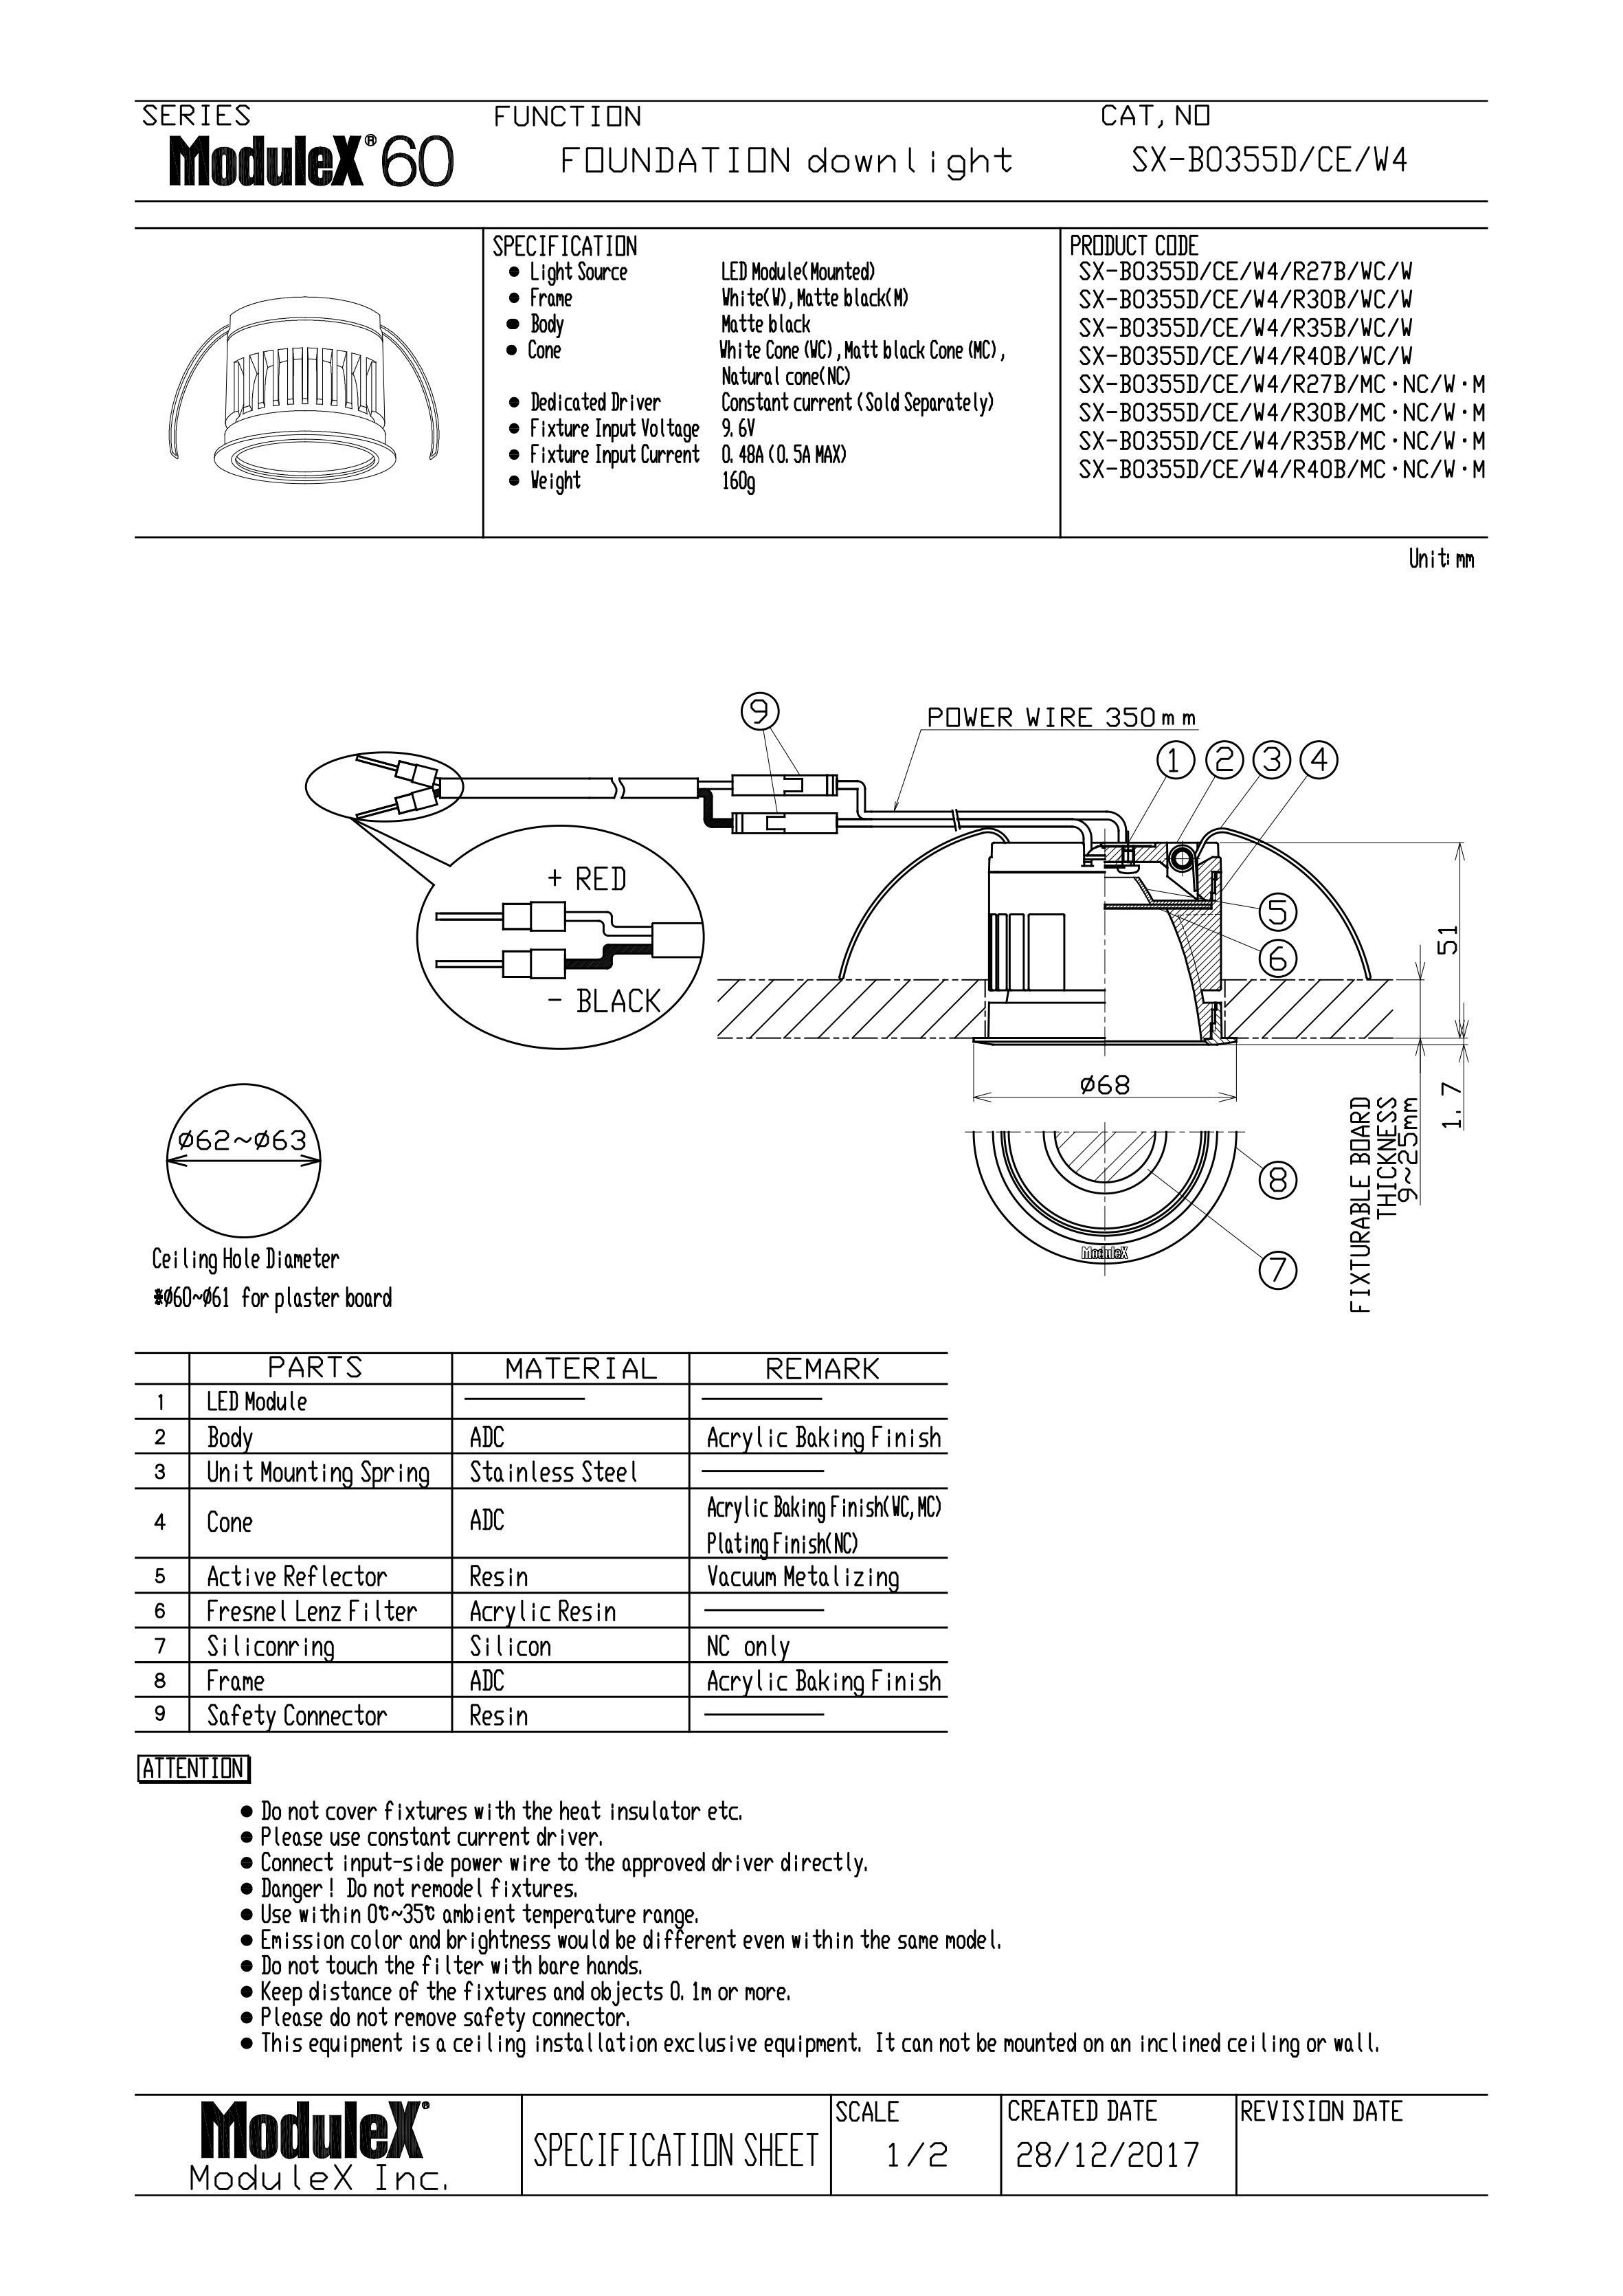 SX-B0355D/W4 Specification Sheet